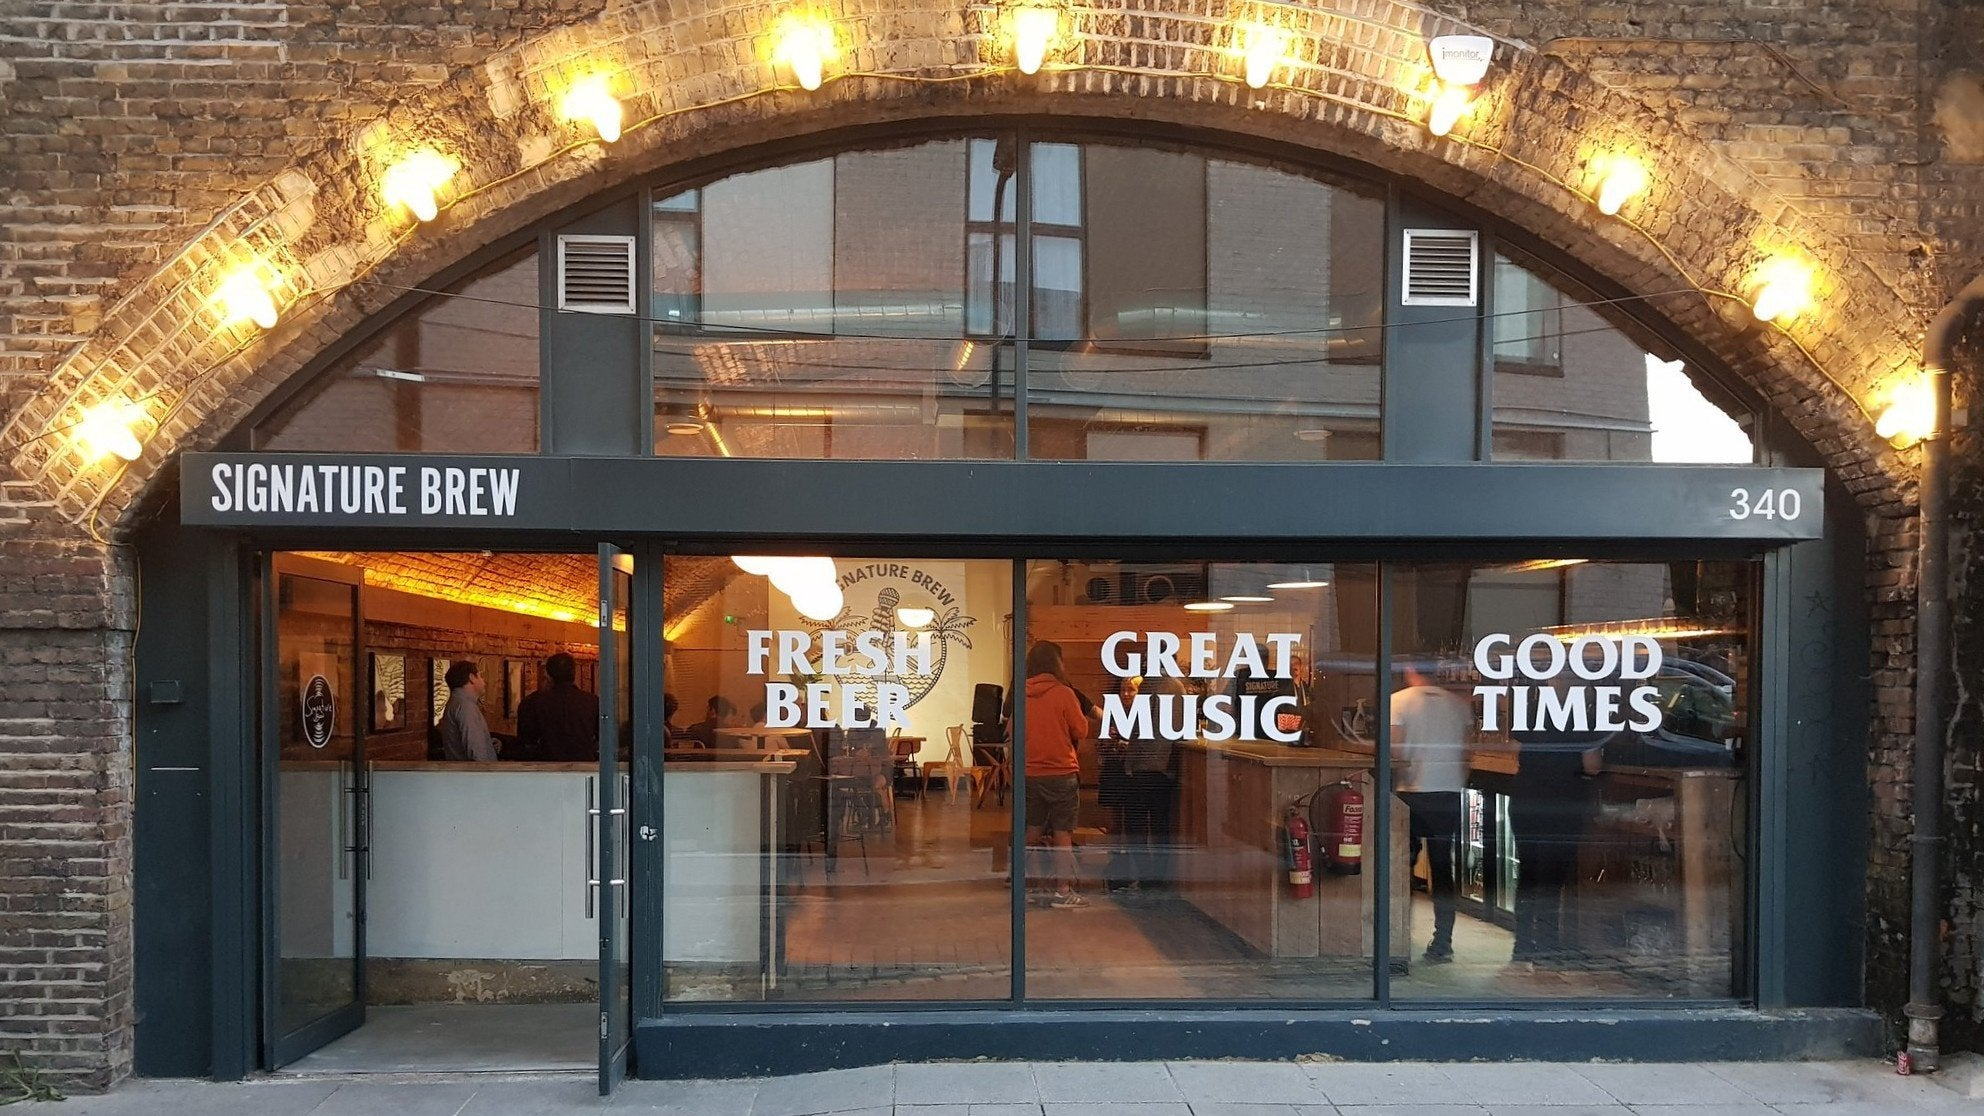 Signature Brew Taproom & Venue, Haggerston, East London - Craft Beer Bar